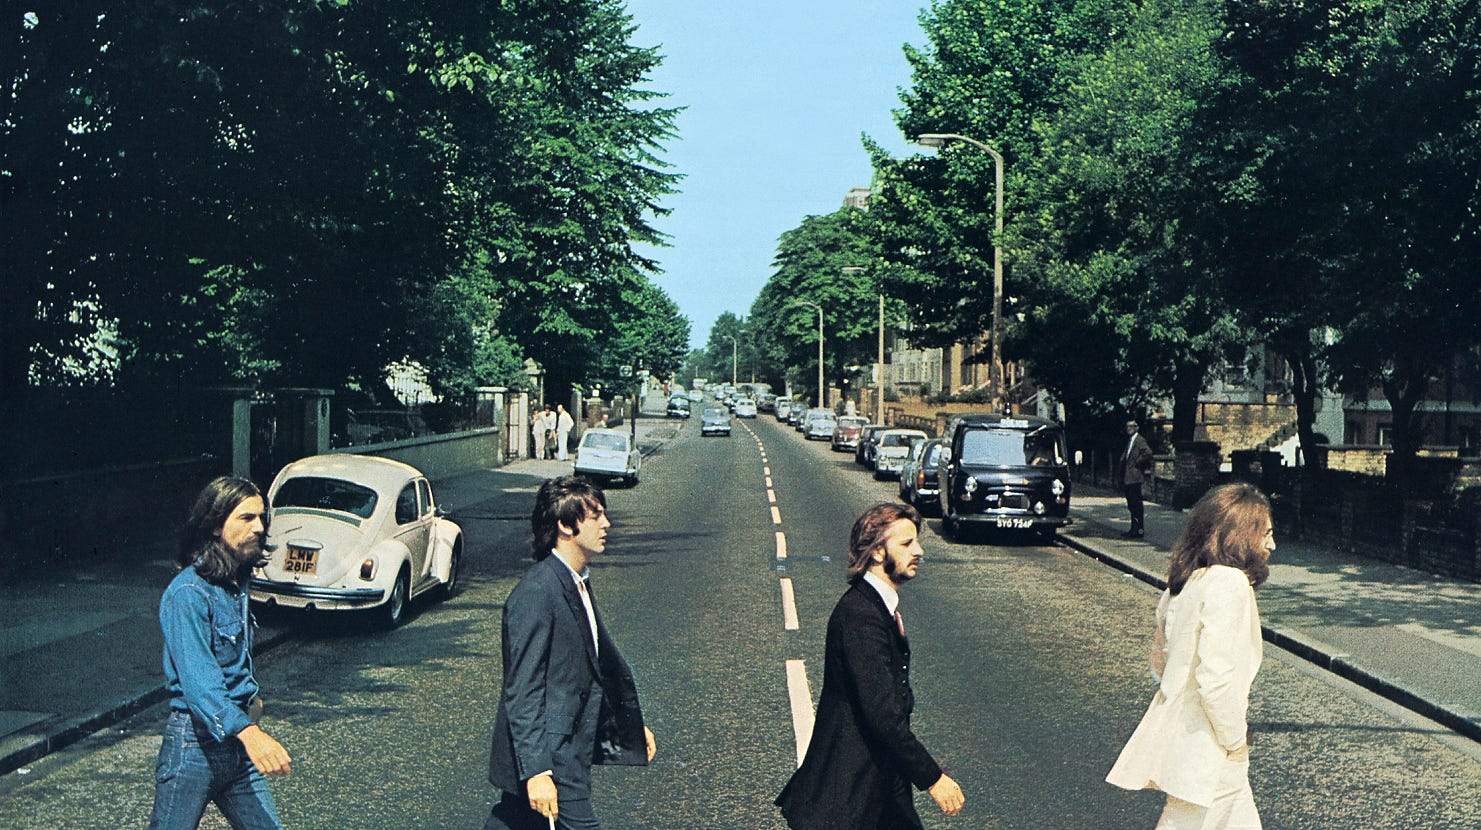 Beatles Fest celebrates an iconic album, and an iconic hoax